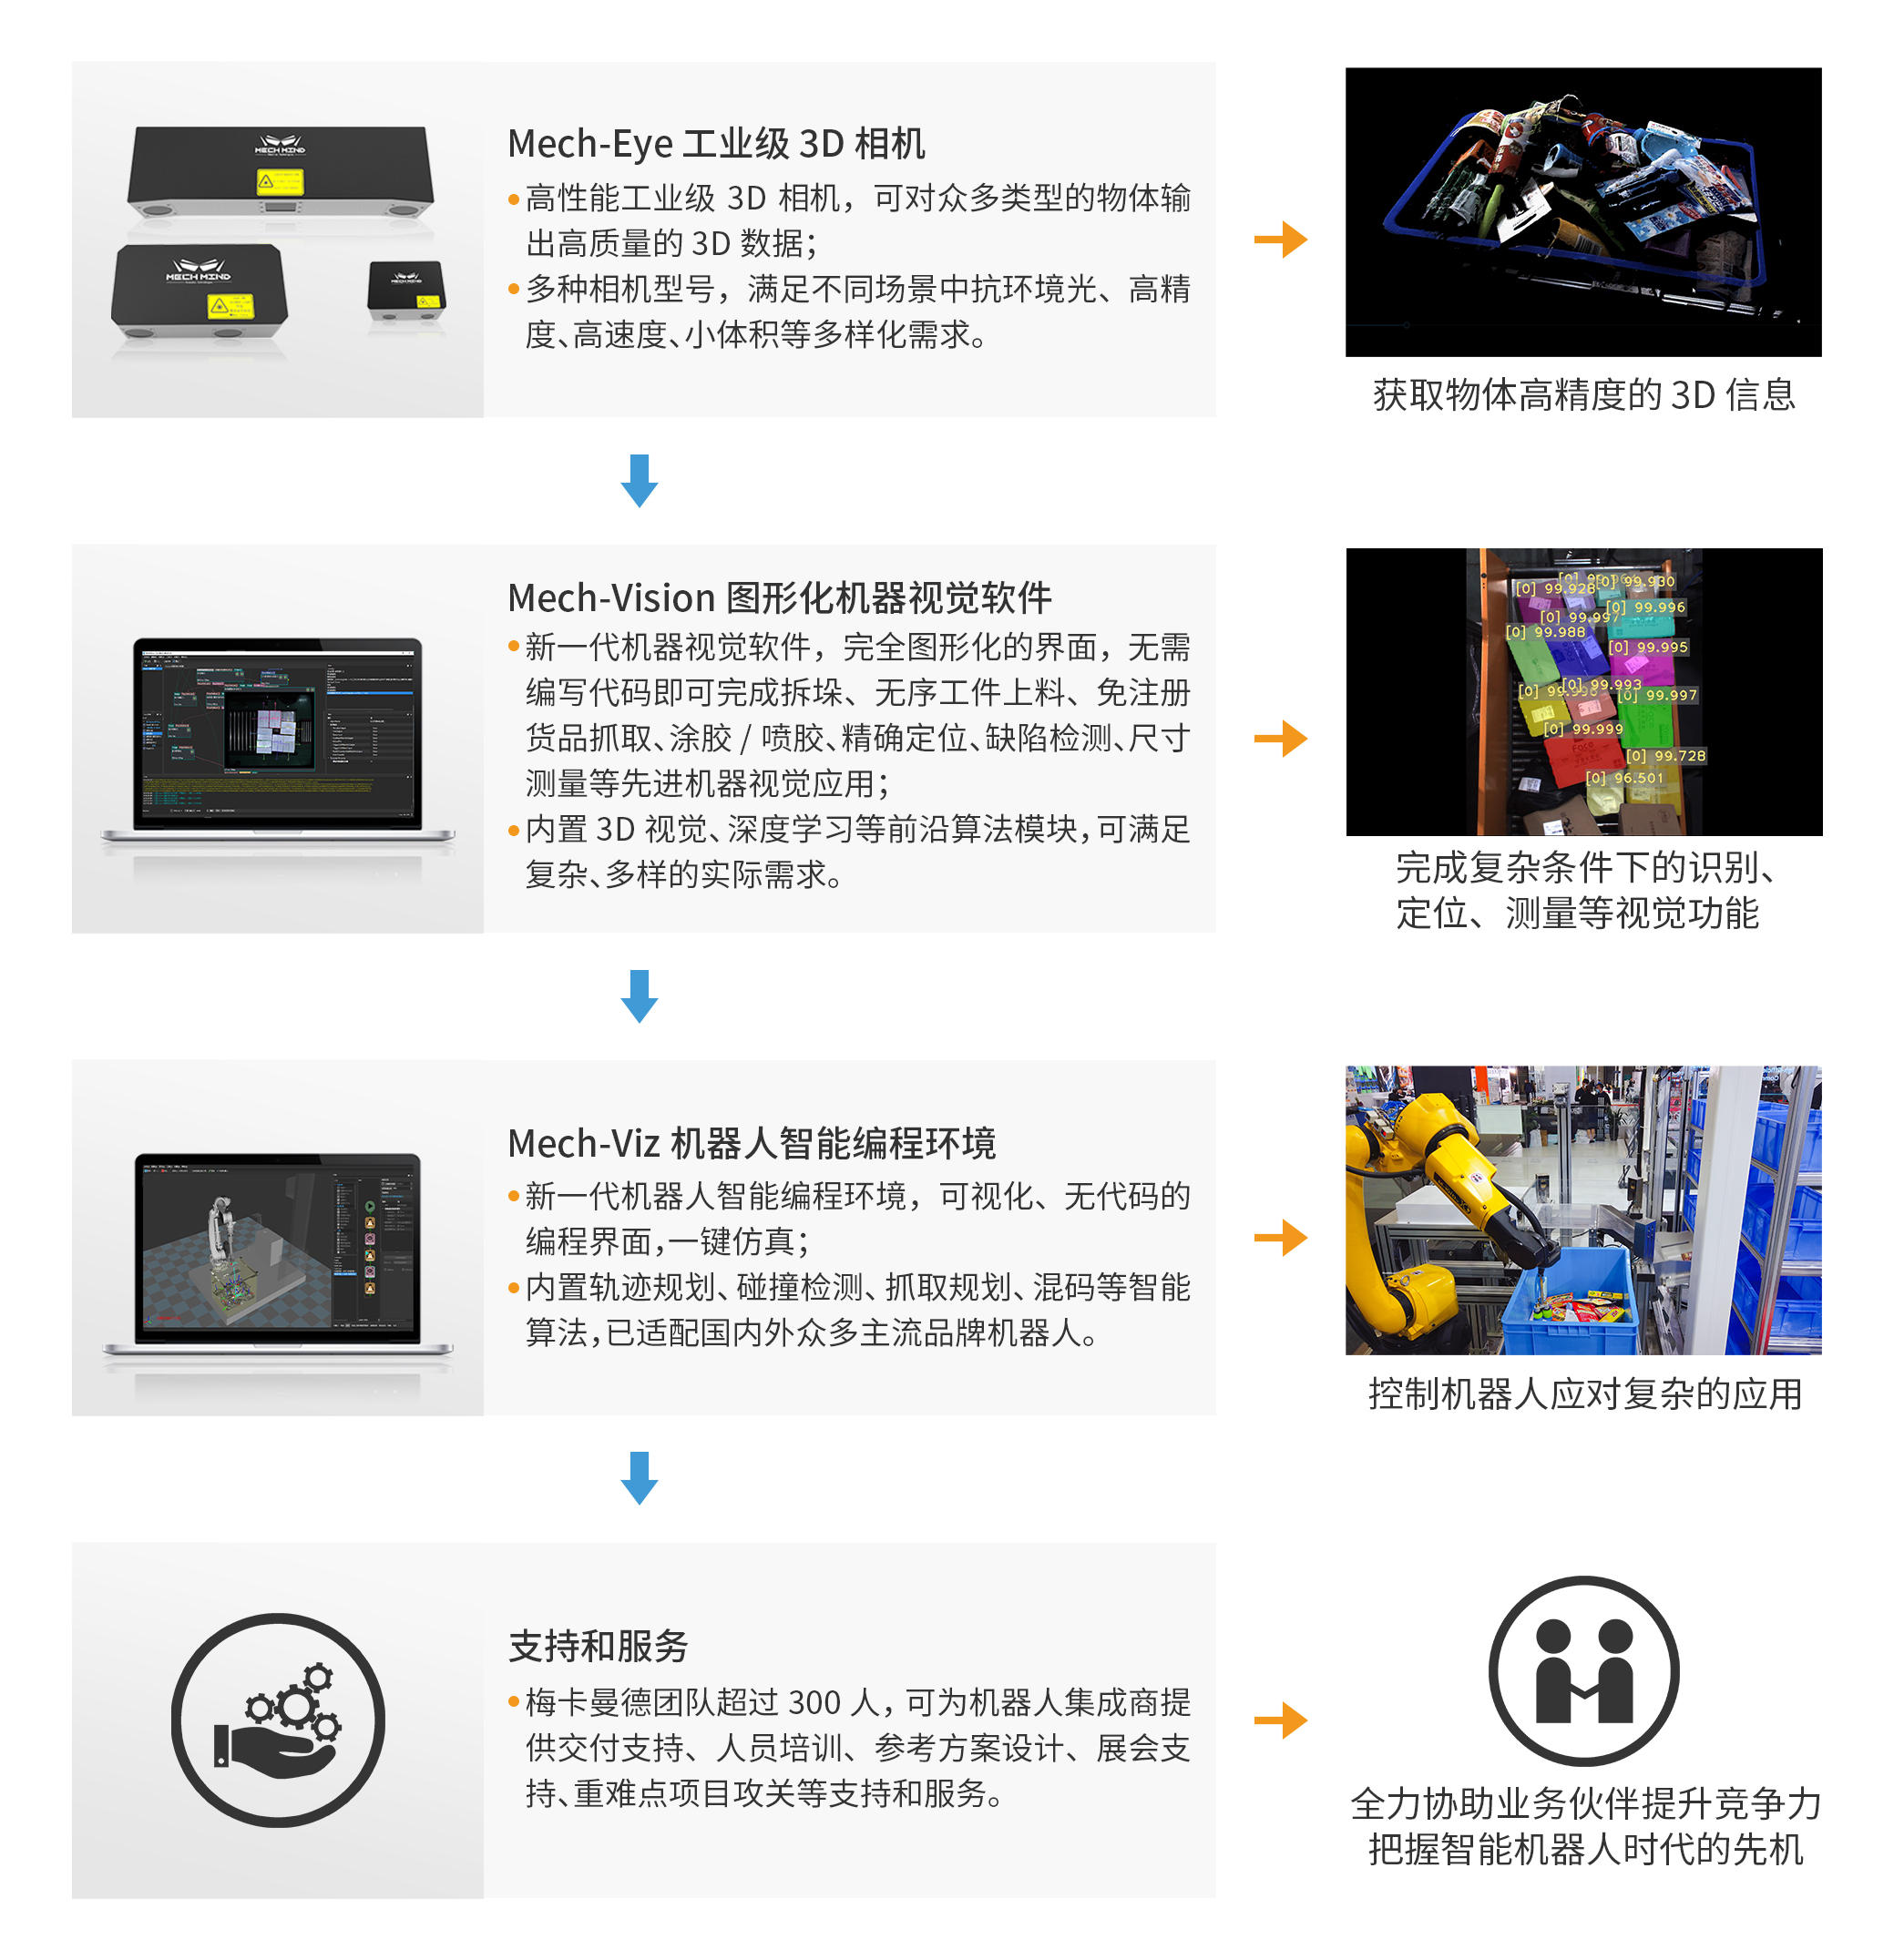 36Kr First Release   3D Vision + AI + Robot Solution Provider [梅卡曼德机器人]Complete C round of financing, led by Meituan